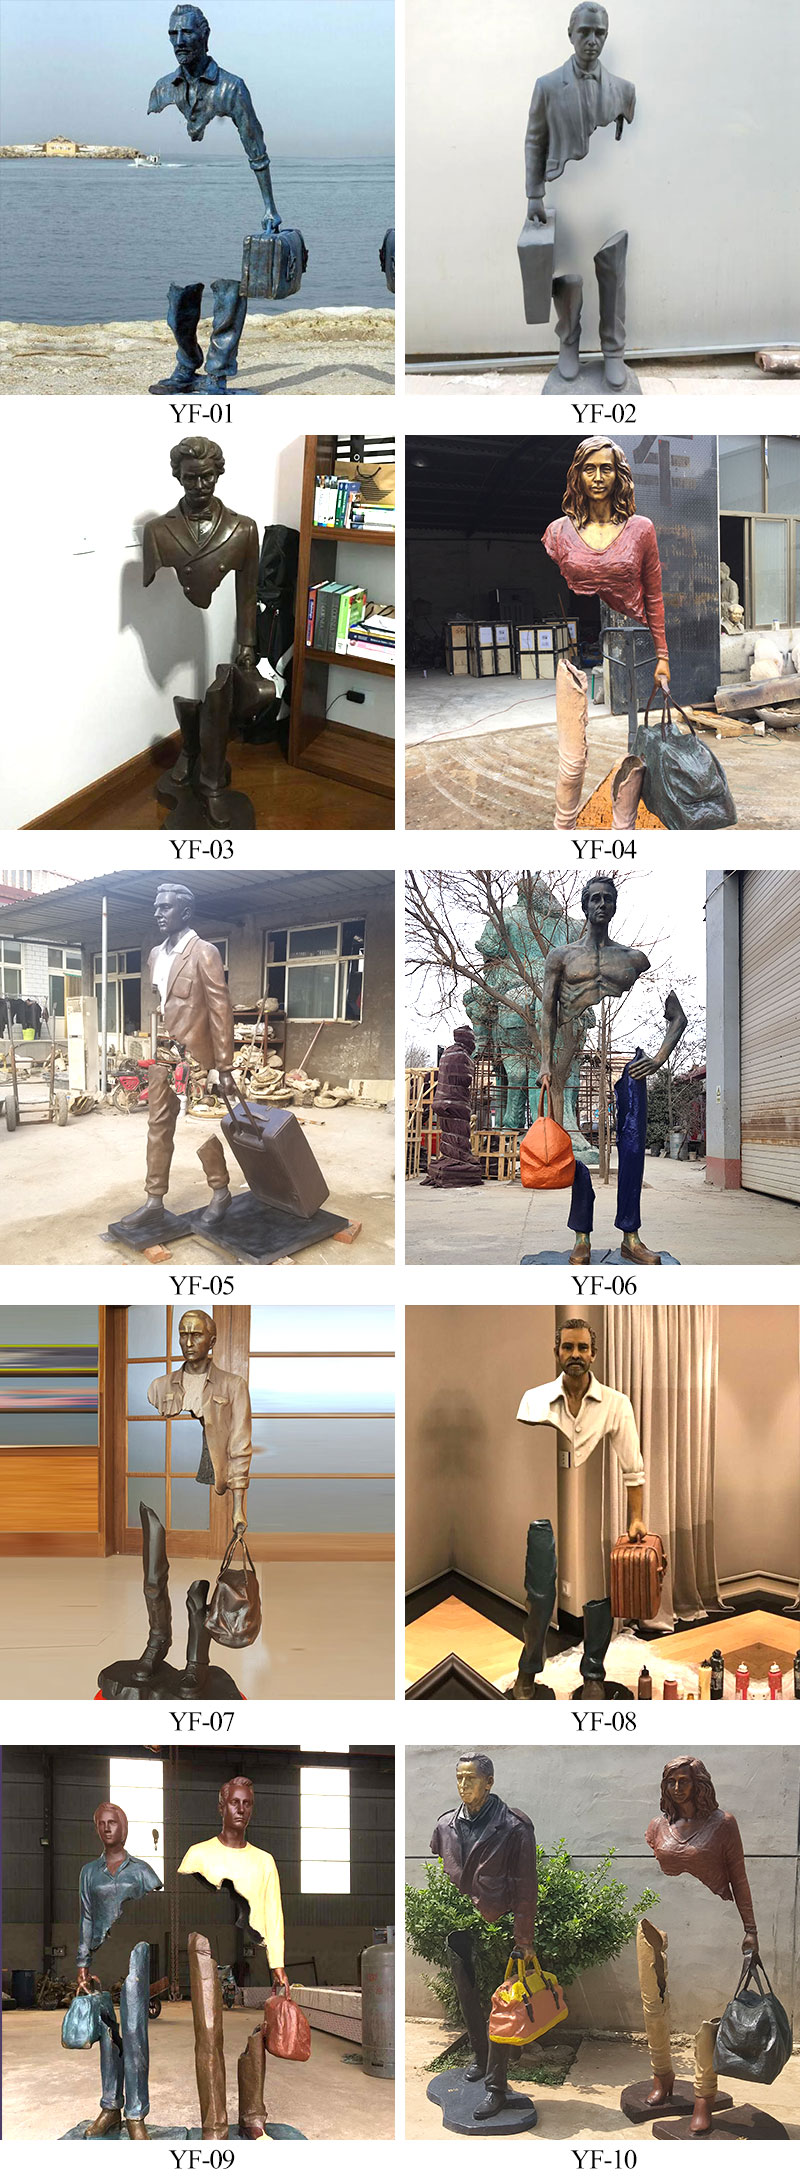 Famous Bruno catalano sculpture statue replica price cost